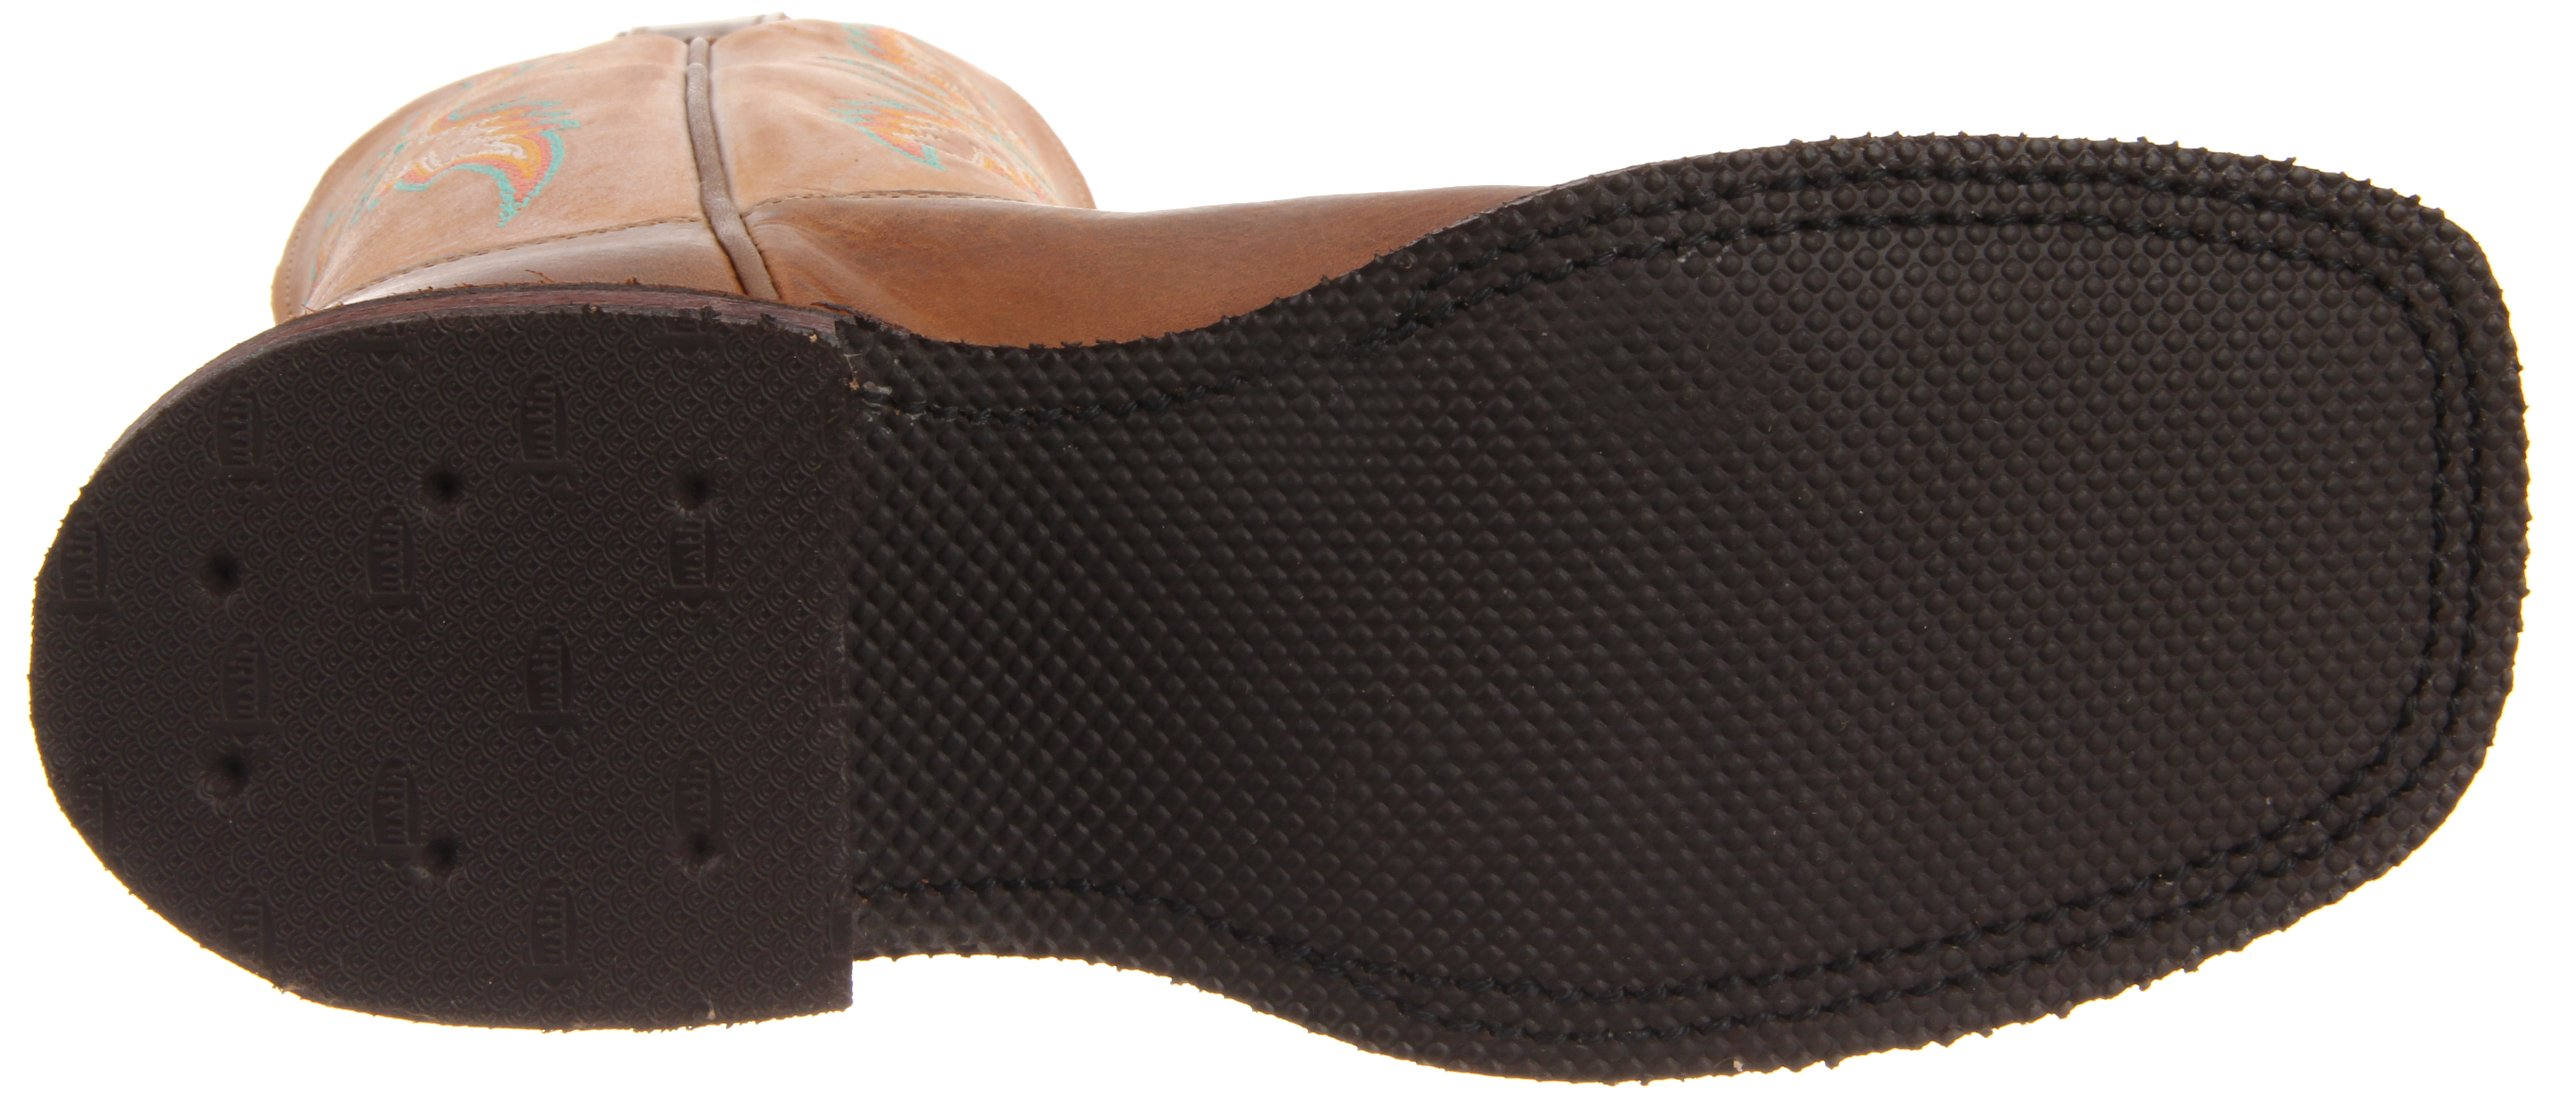 Justin Boots Women's U.S.A. Bent Rail Collection 13'' Boot Wide Square Double Stitch Toe Performance Rubber Outsole,Arizona Mocha/Fogged Camel,6.5 B US by Justin Boots (Image #3)